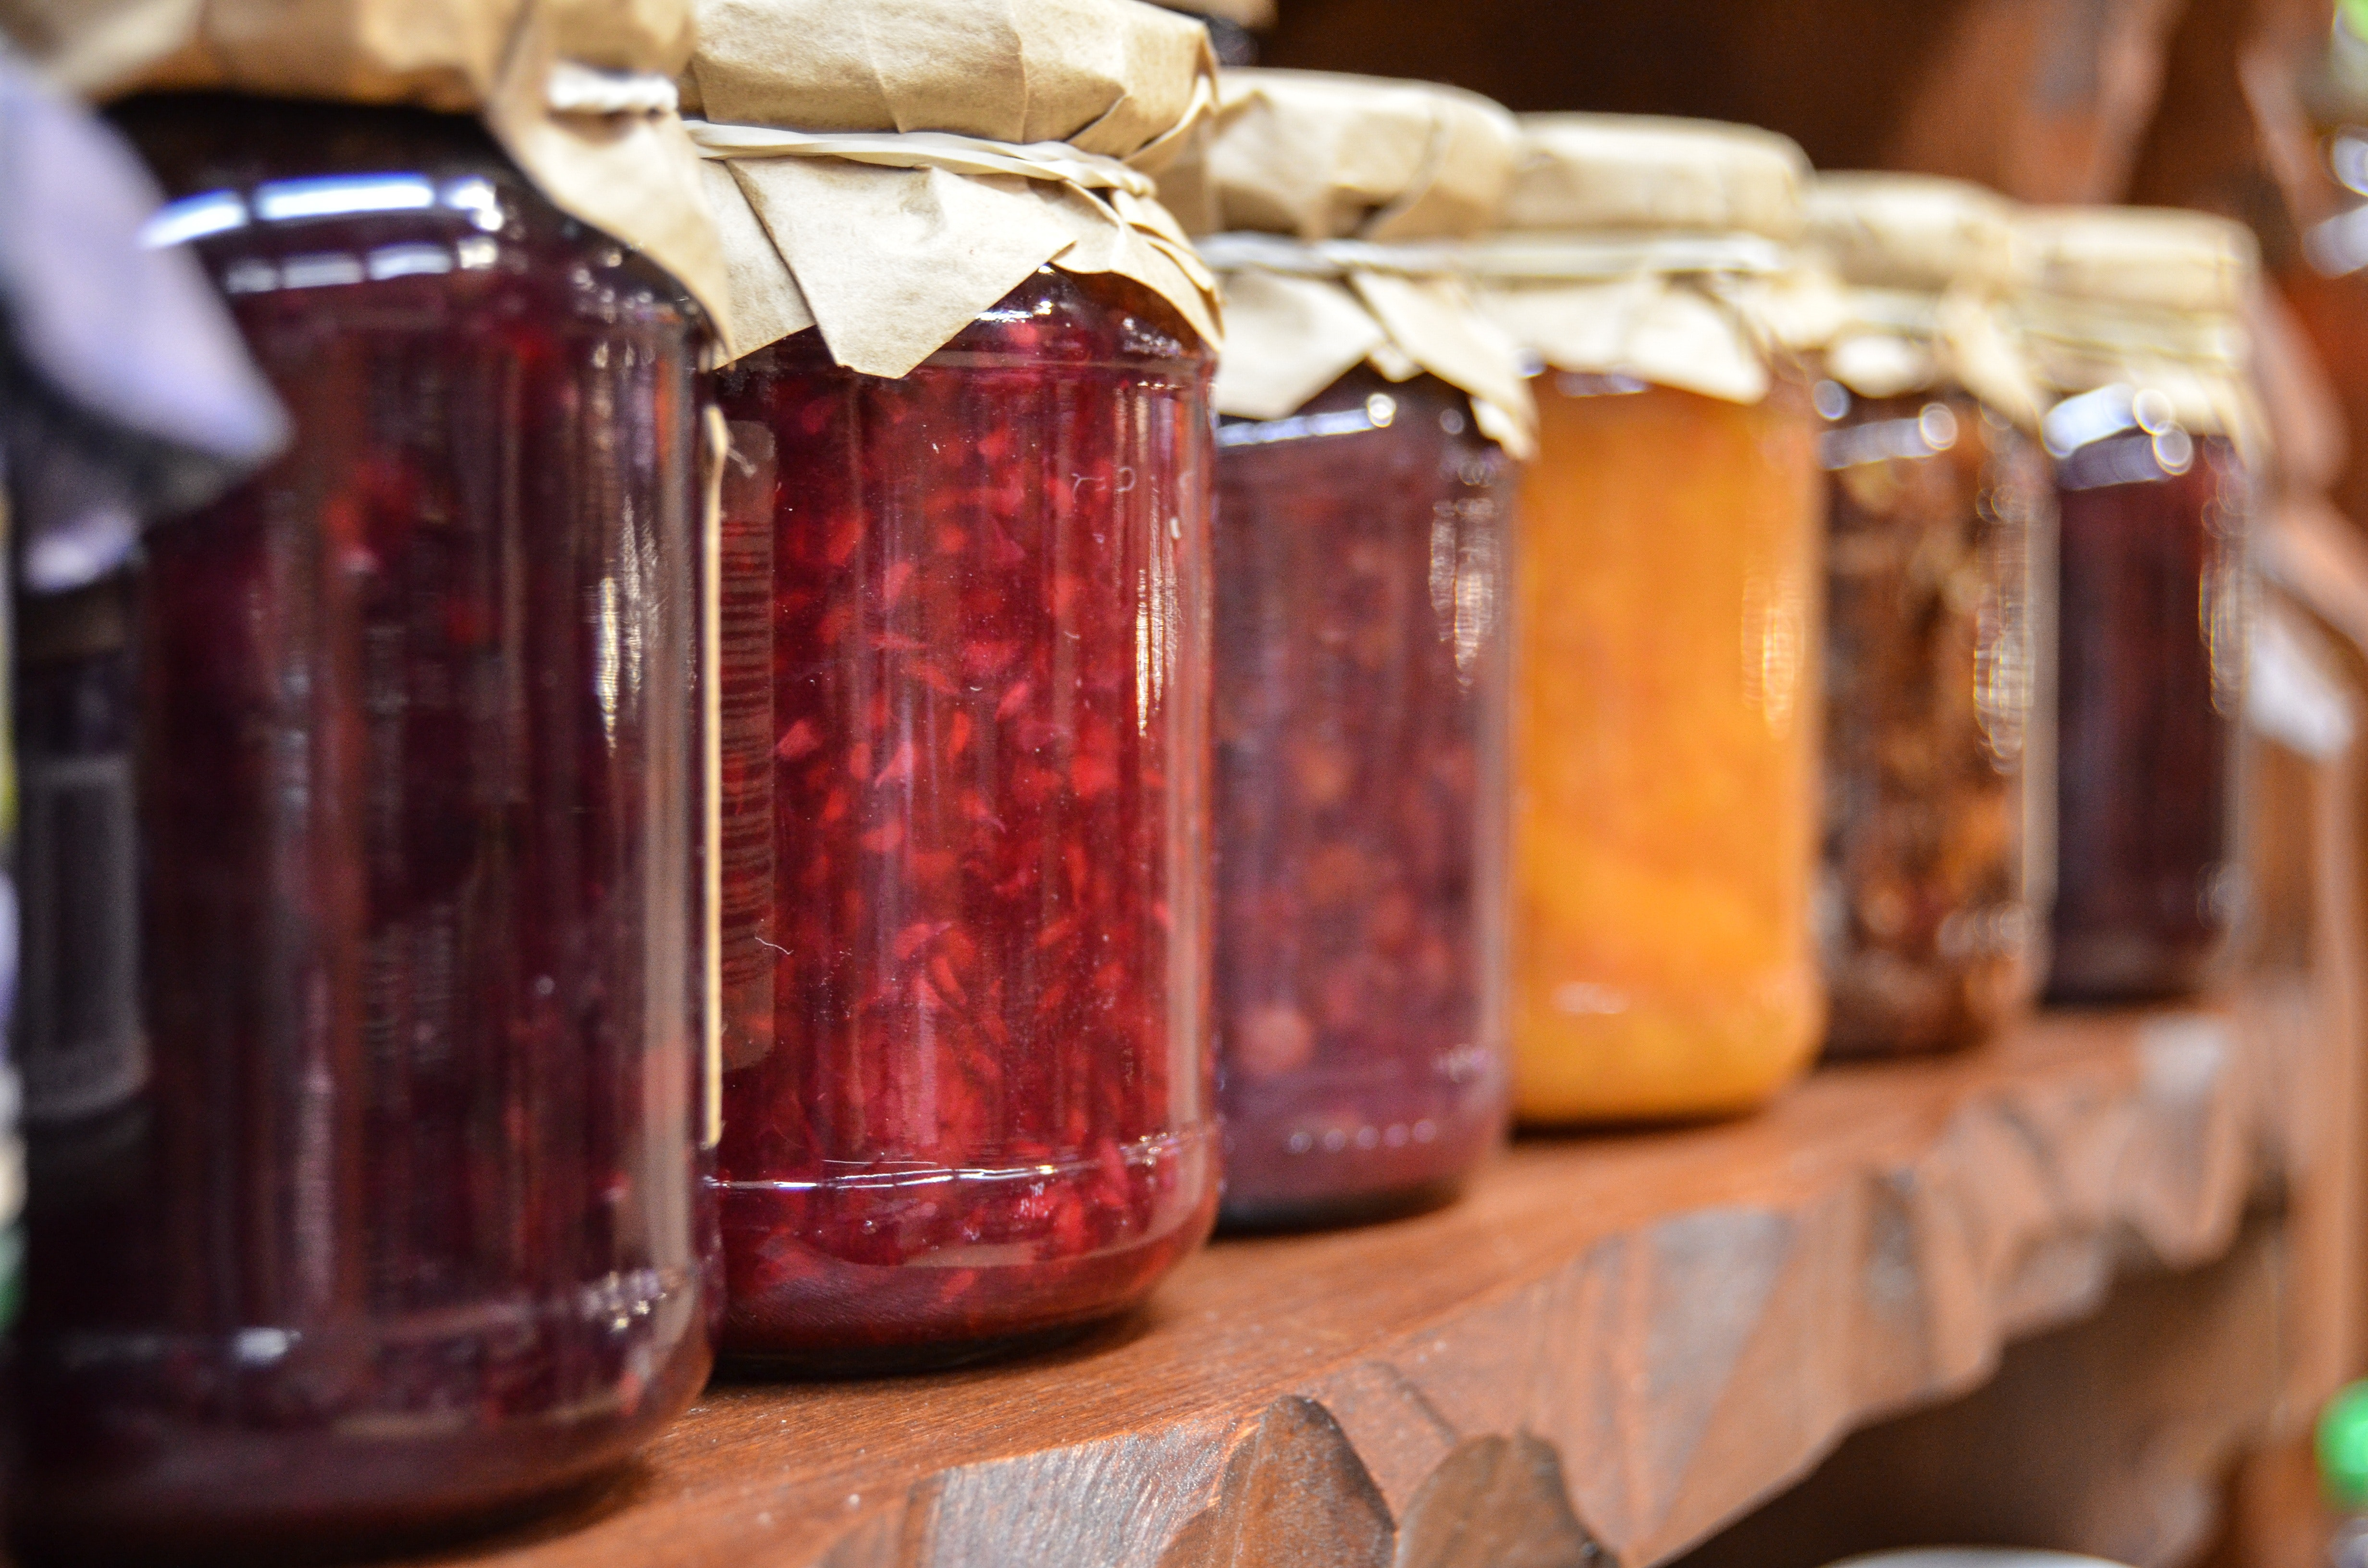 Preserves are always a popular option at summer fates and market stalls